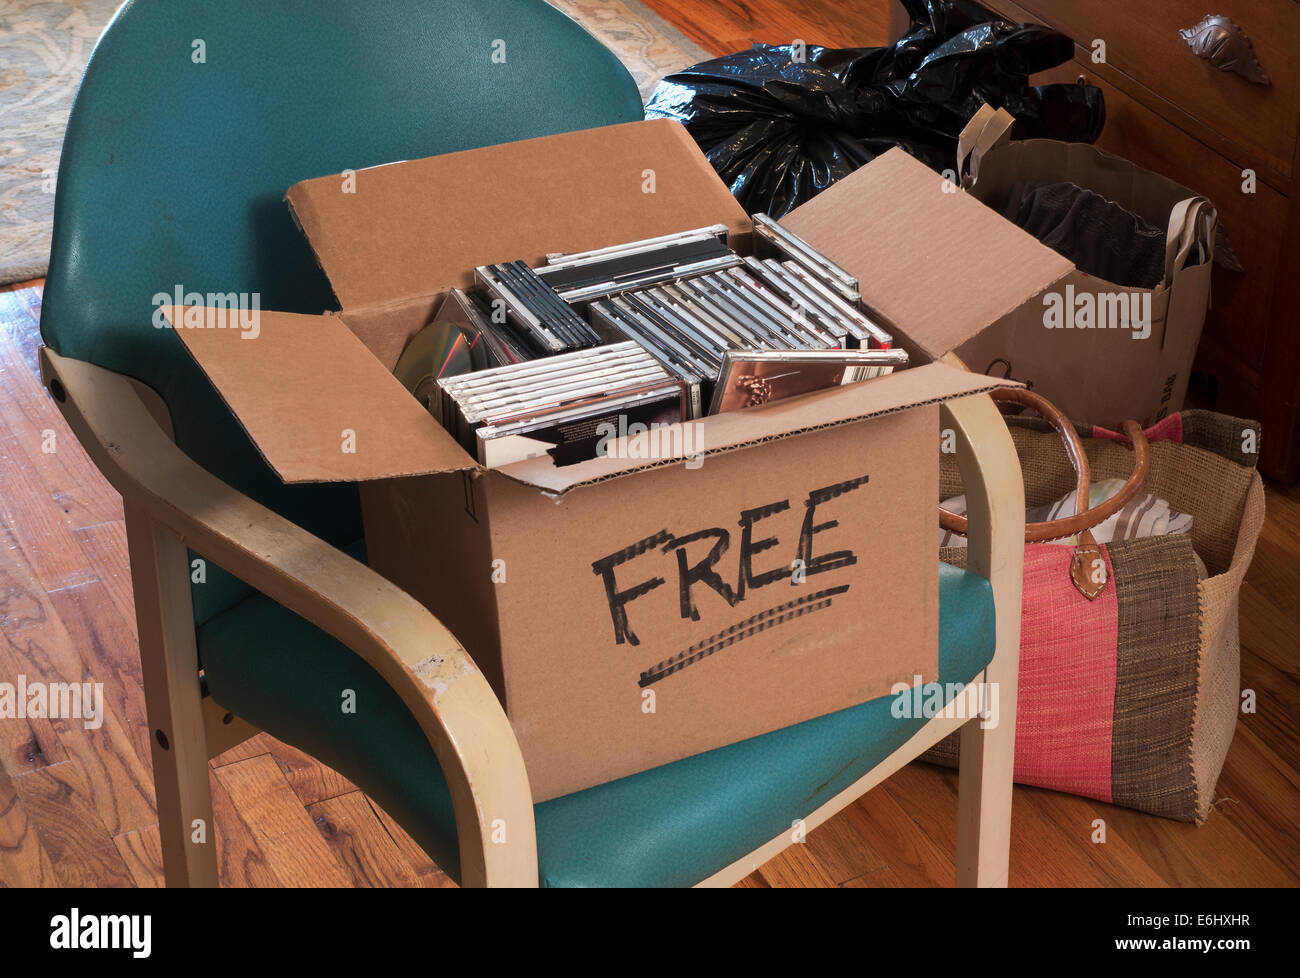 carton of free CDs and DVDs - Stock Image